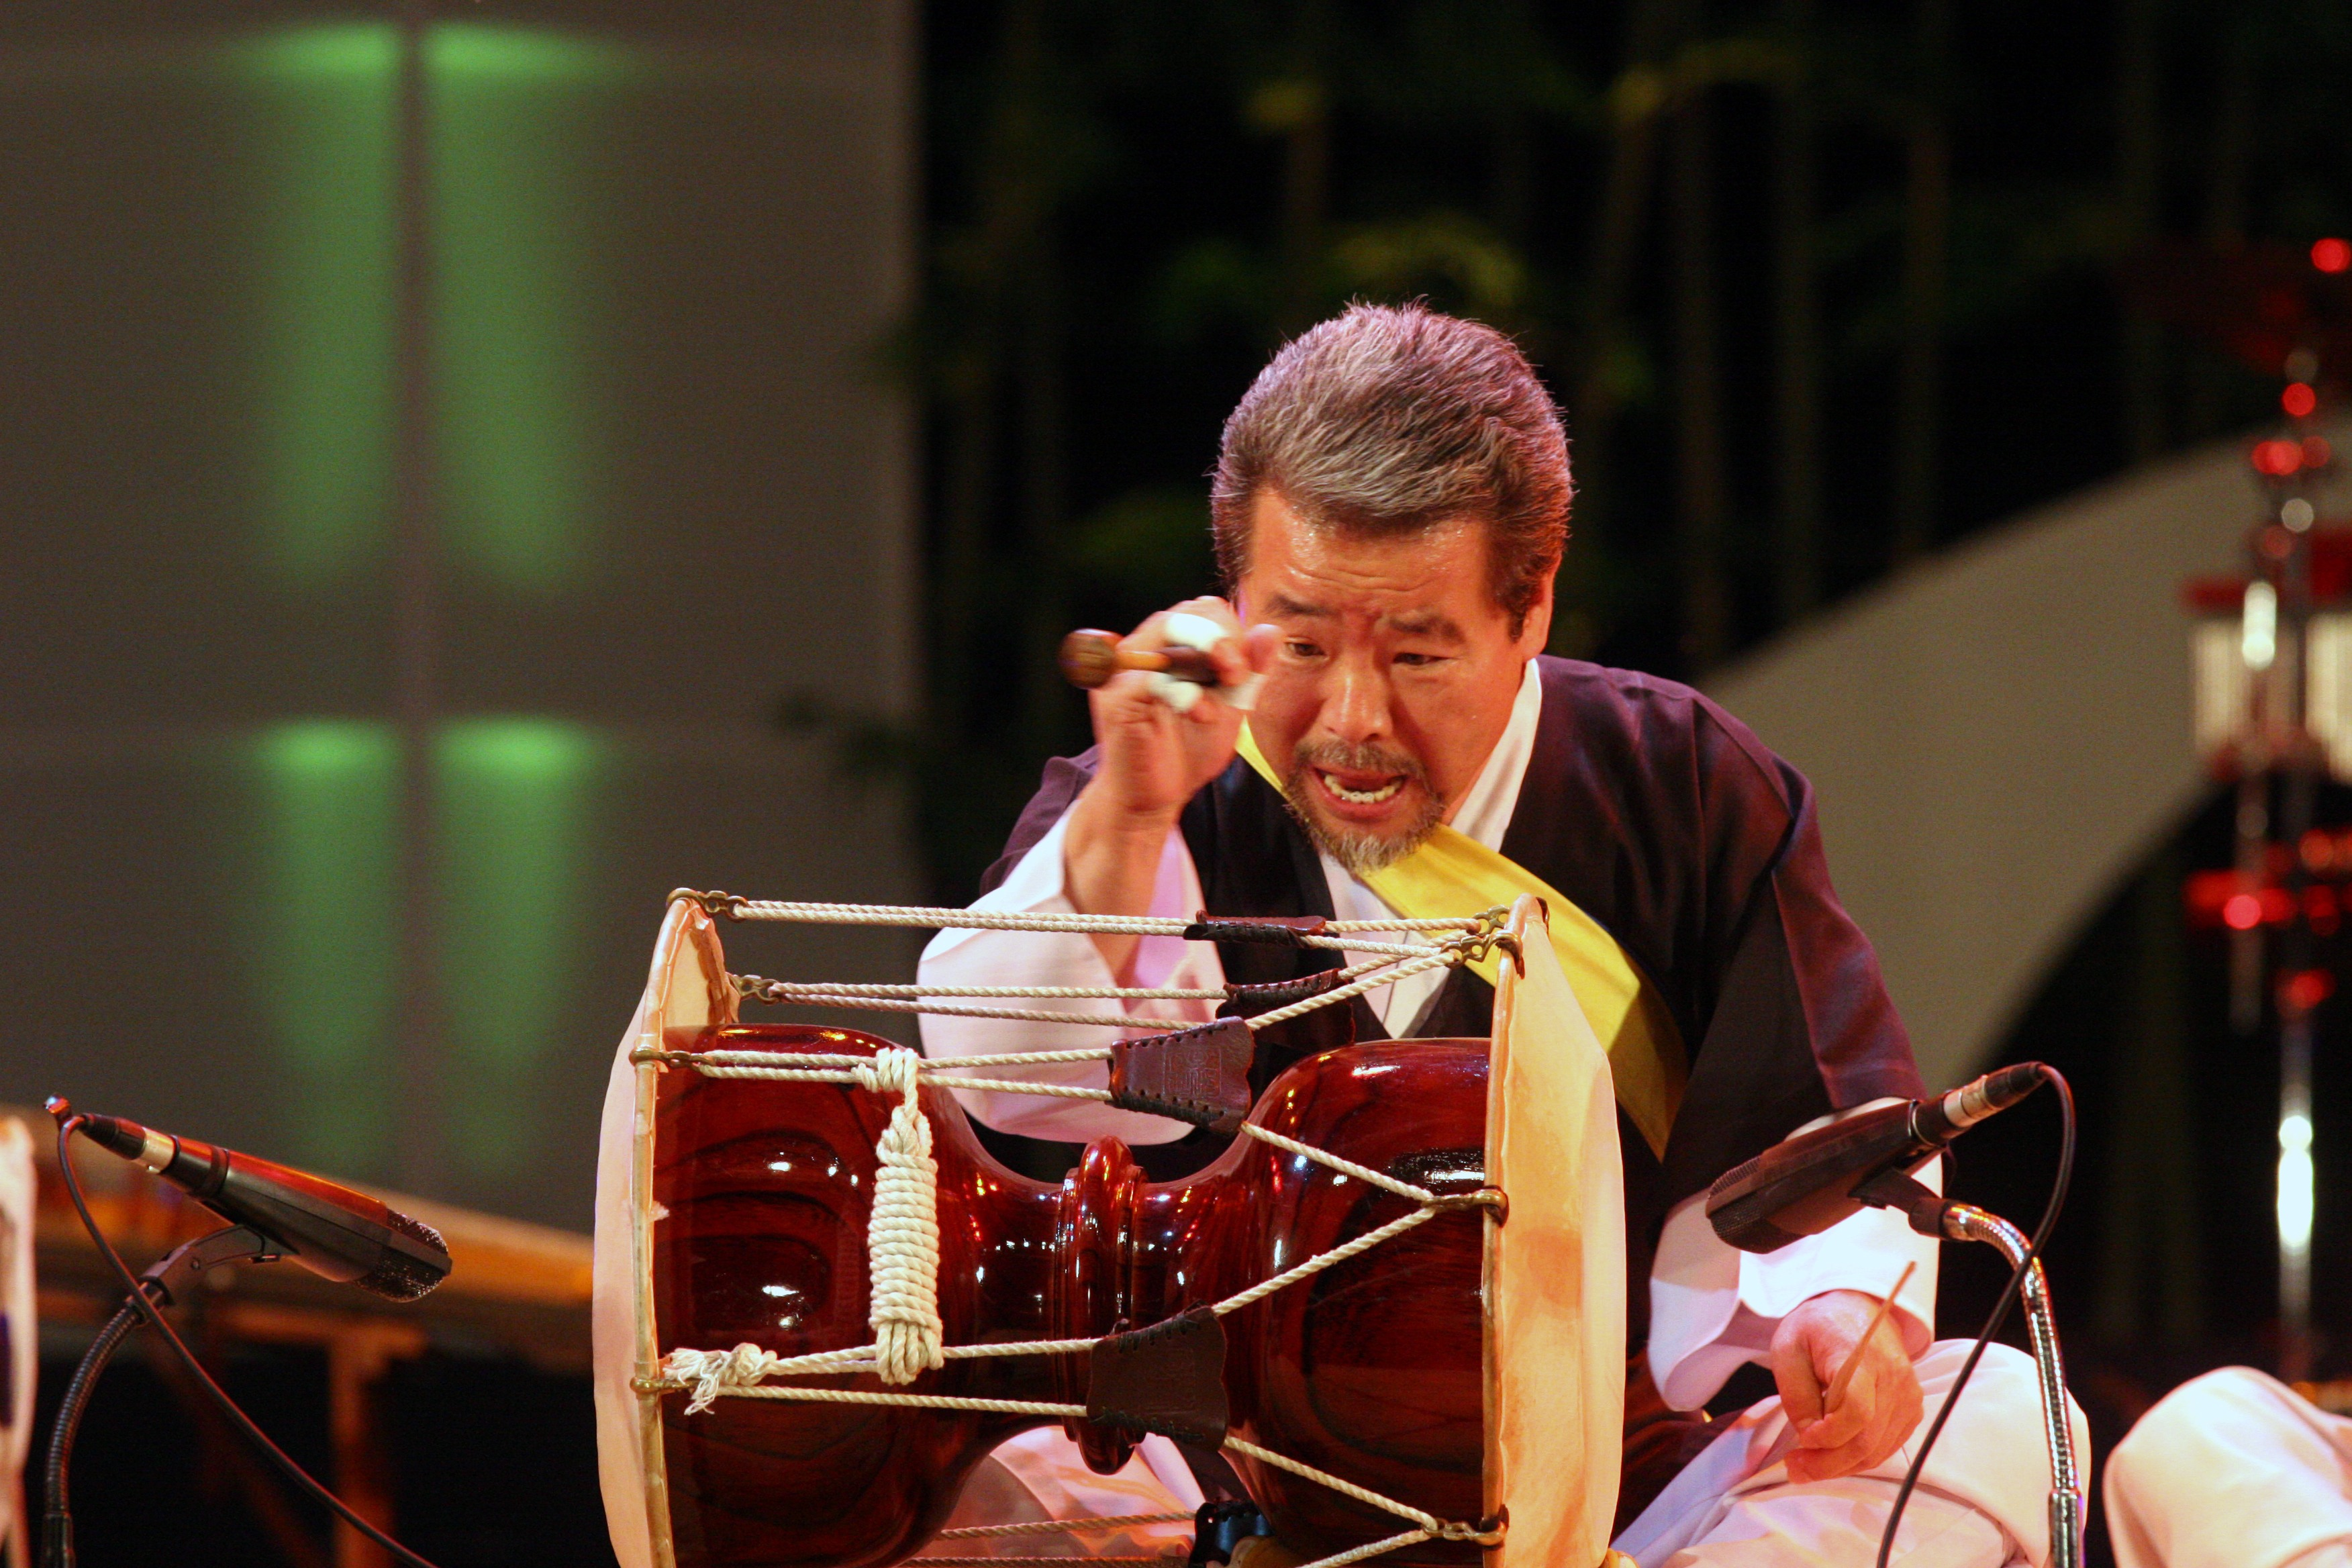 Kim Duk Soo playing drums